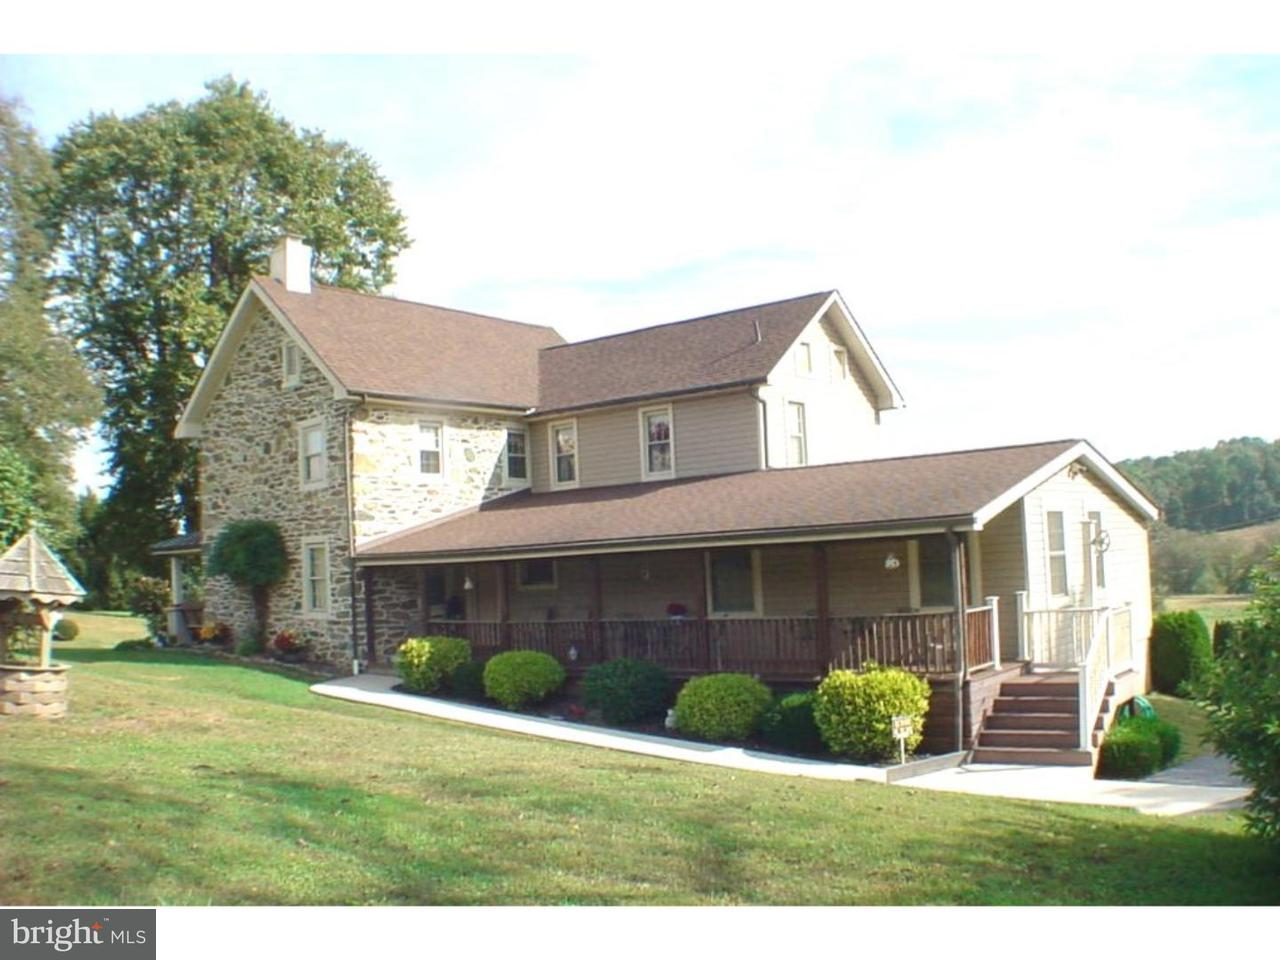 Single Family Home for Sale at 2384 ROBERT FULTON HWY Peach Bottom, Pennsylvania 17563 United States